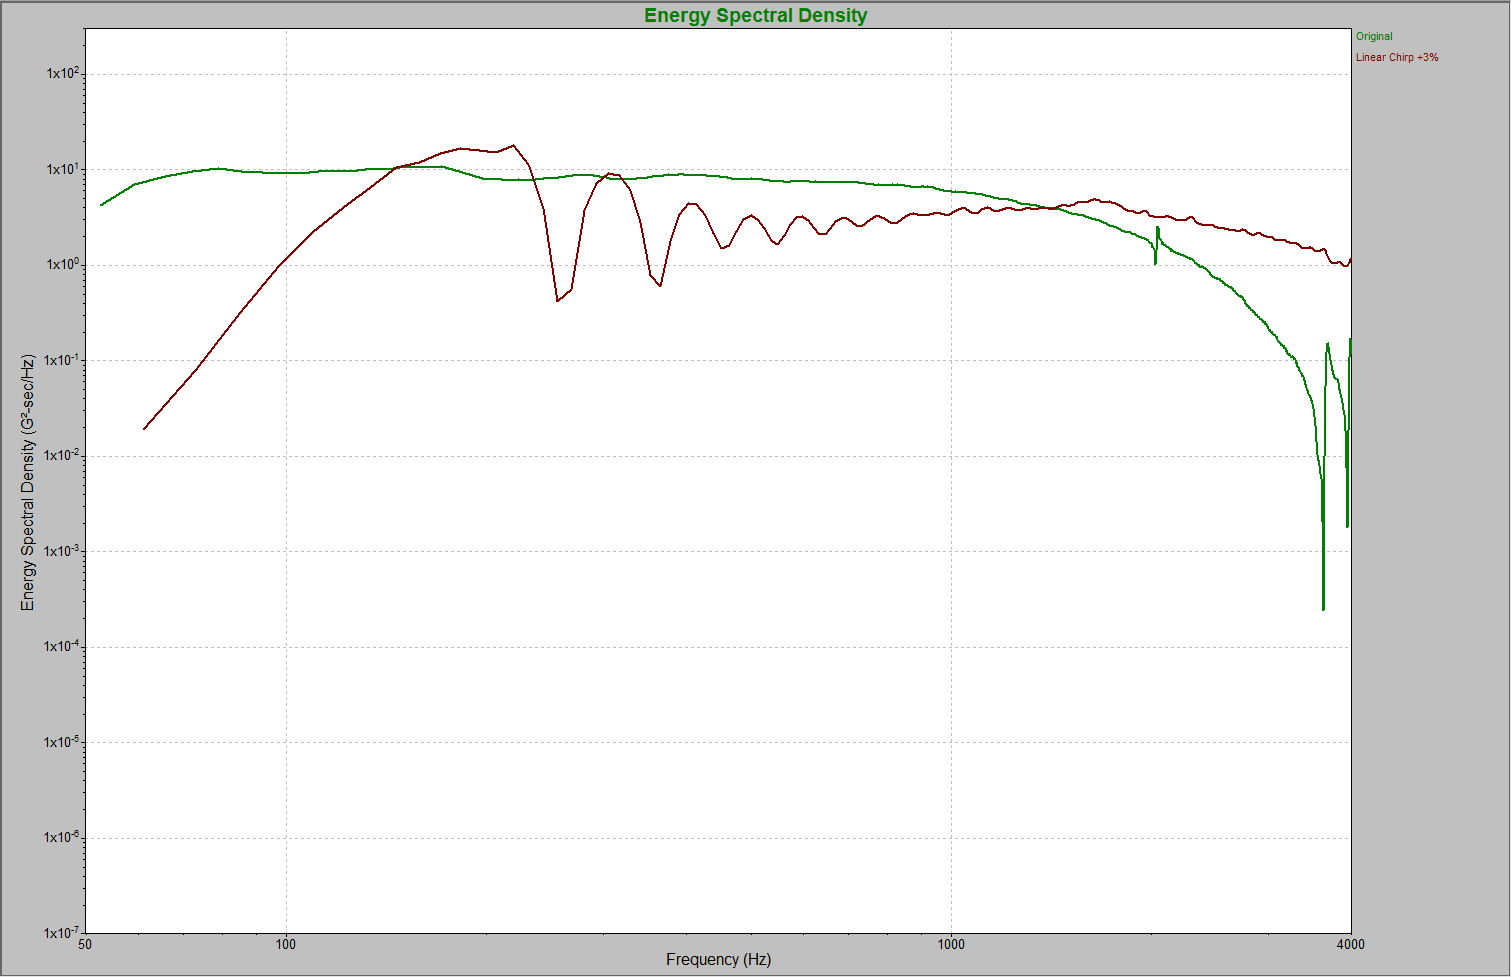 A Linear Chirp waveform overlaid on the original recording